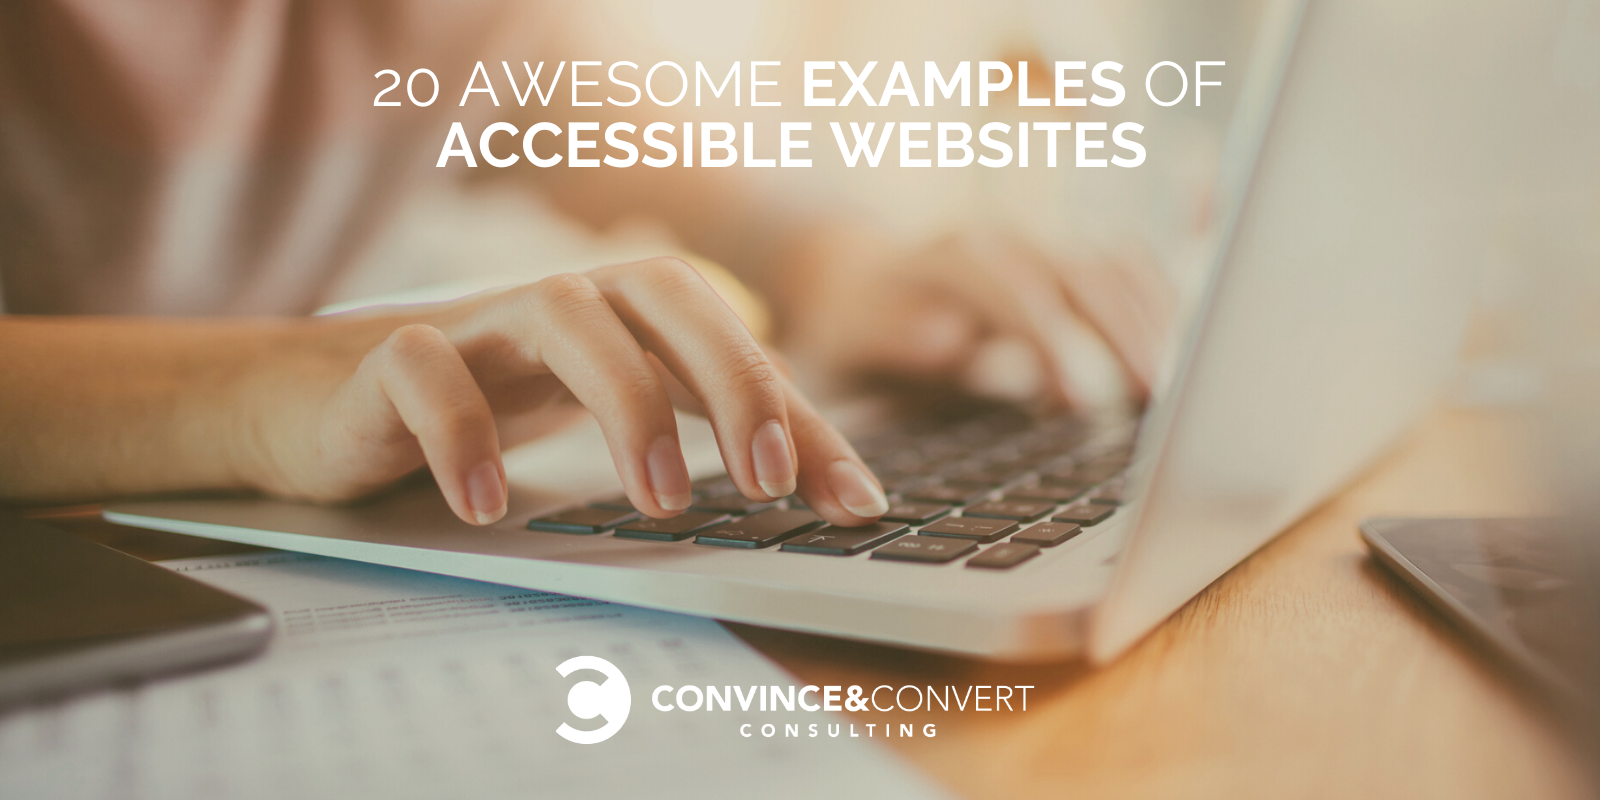 20 Awesome Examples of Accessible Web sites – Persuade & Convert